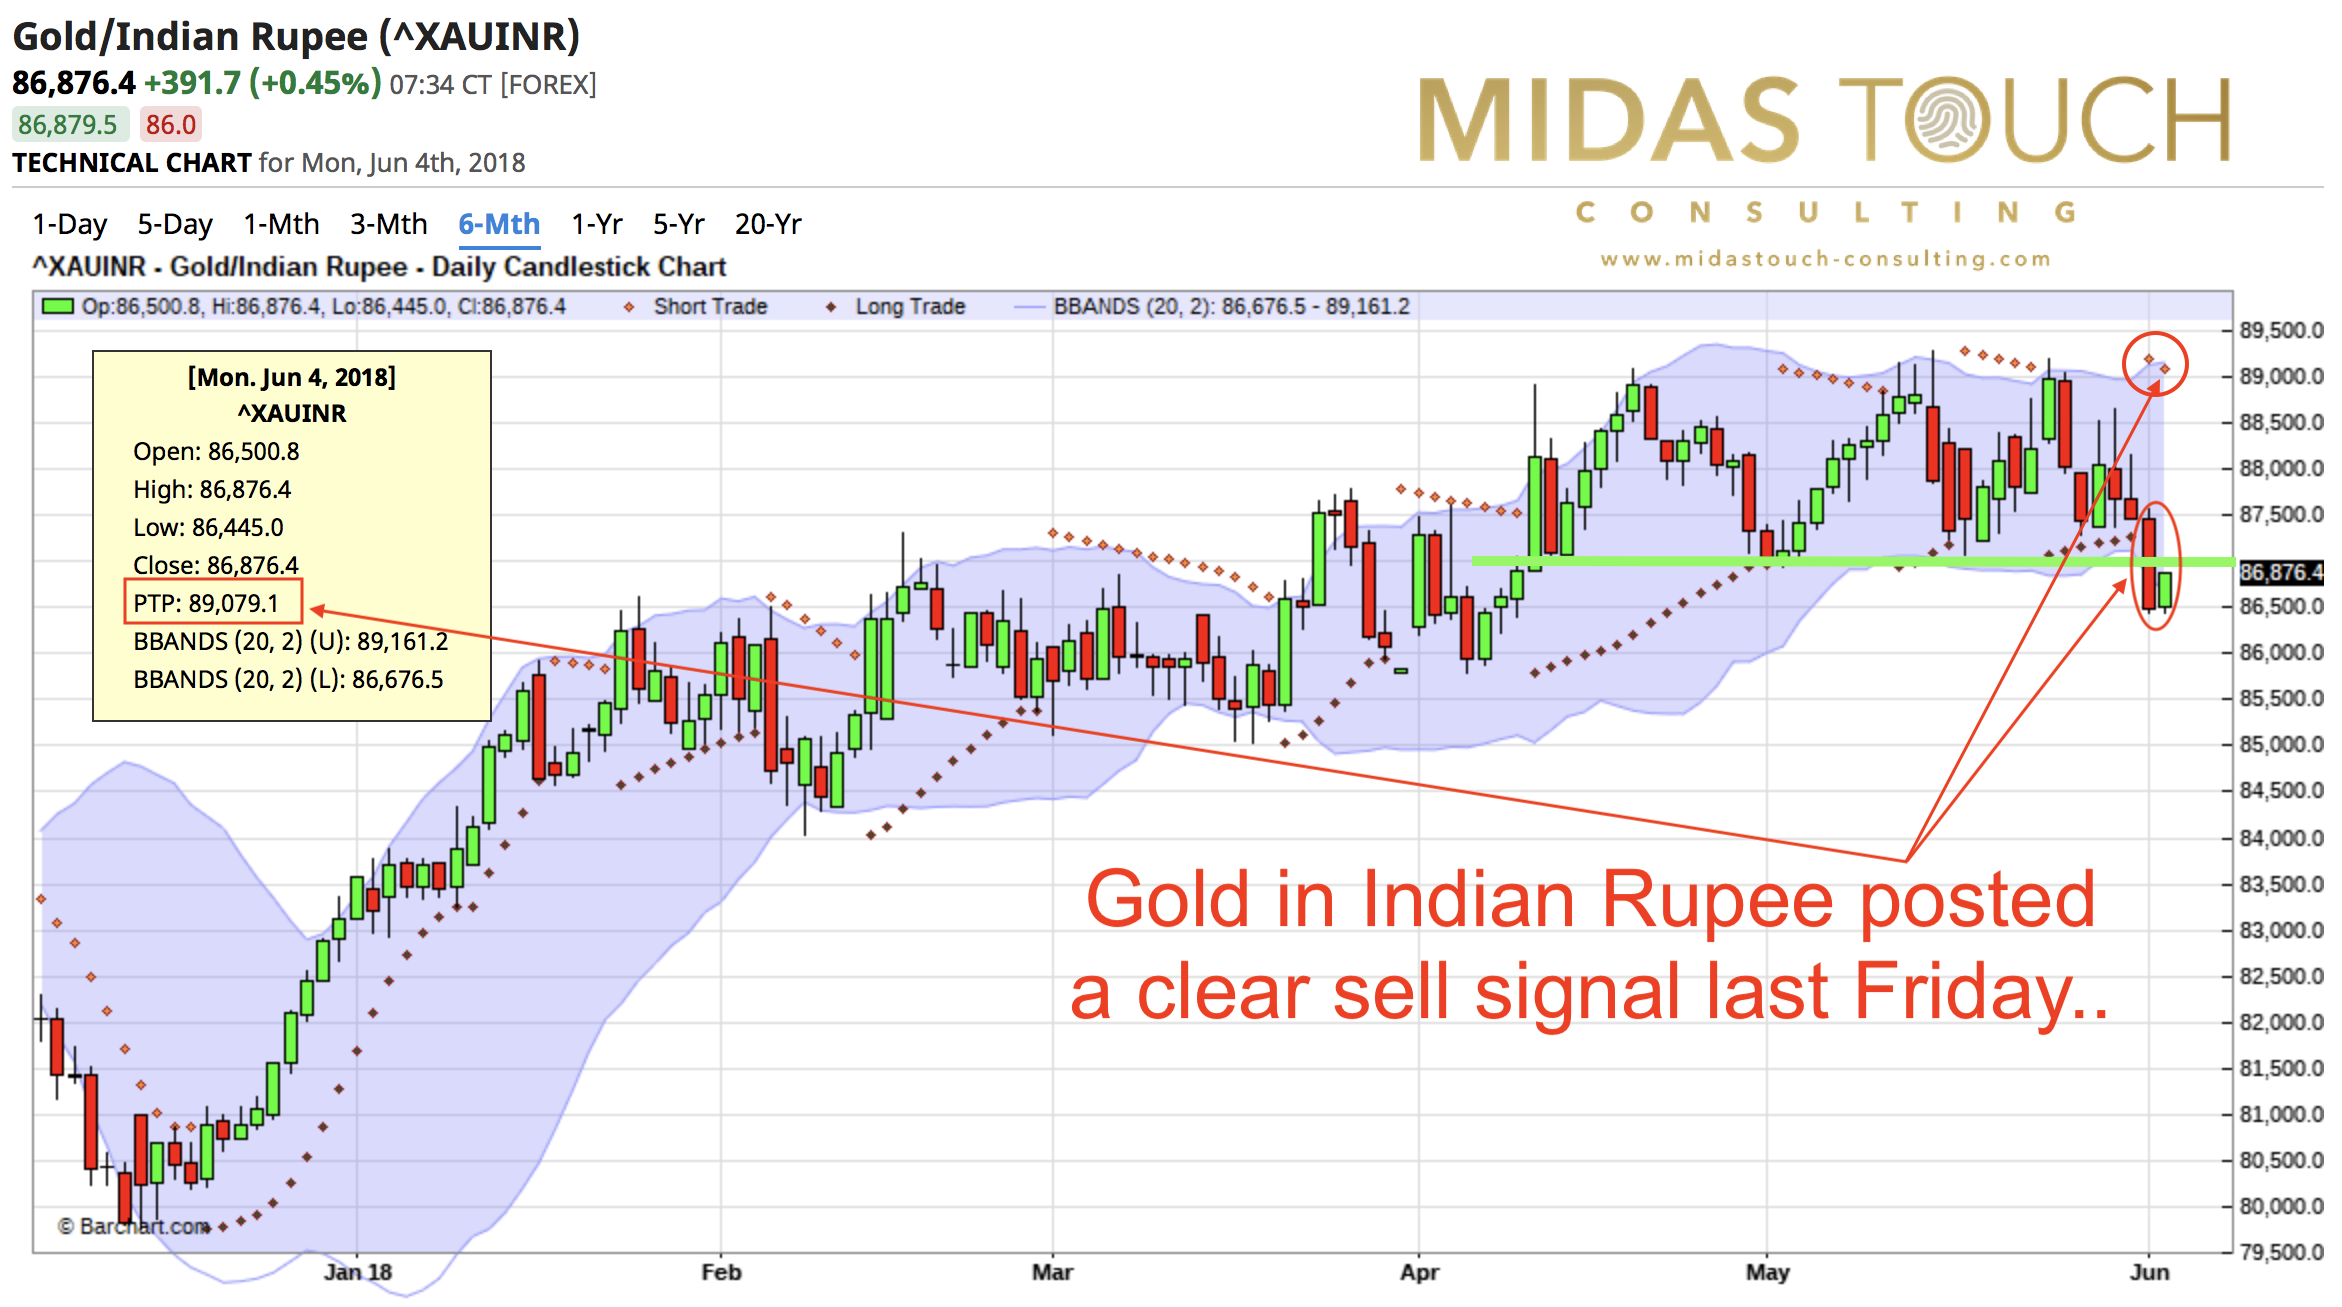 Gold in Indian Rupee as of June 4th, 2018